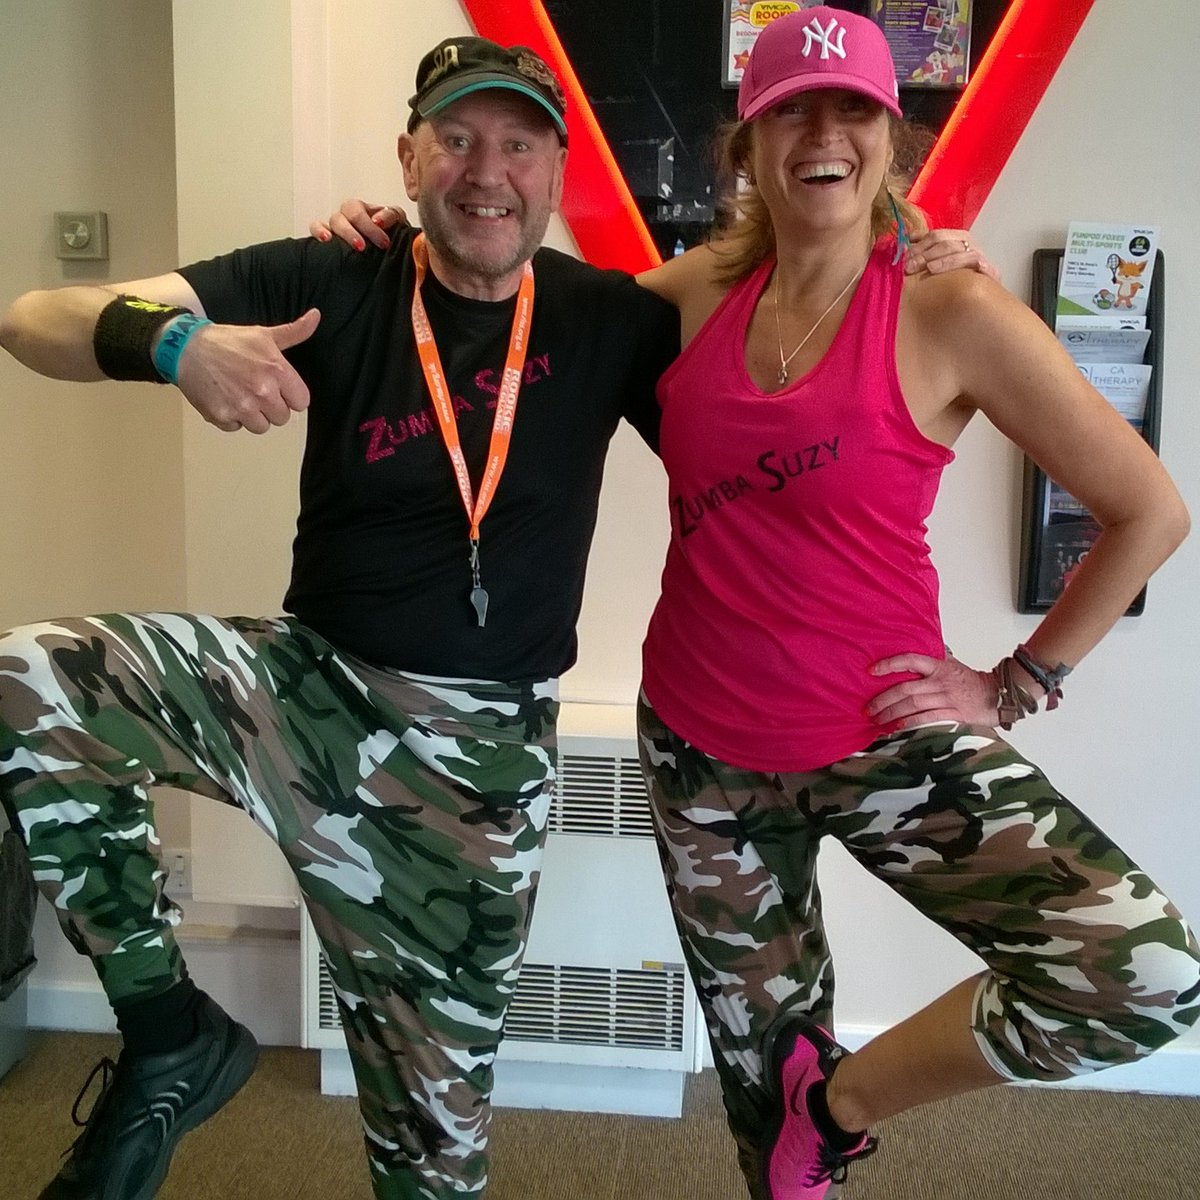 @jabberingjourno @gemmadeeray @BBCLancashire #gymsopen I return to my my #Gym #Classes #Safely  ...Tomorrow!  #BodyPump #Spinning #RocBox  ......and of course  #Zumba! ! 🎵🎶  @zumbasuzy @FCYMCA  (Pic BEFORE #SocialDistance measures 👍) https://t.co/wFSQ2lISo3